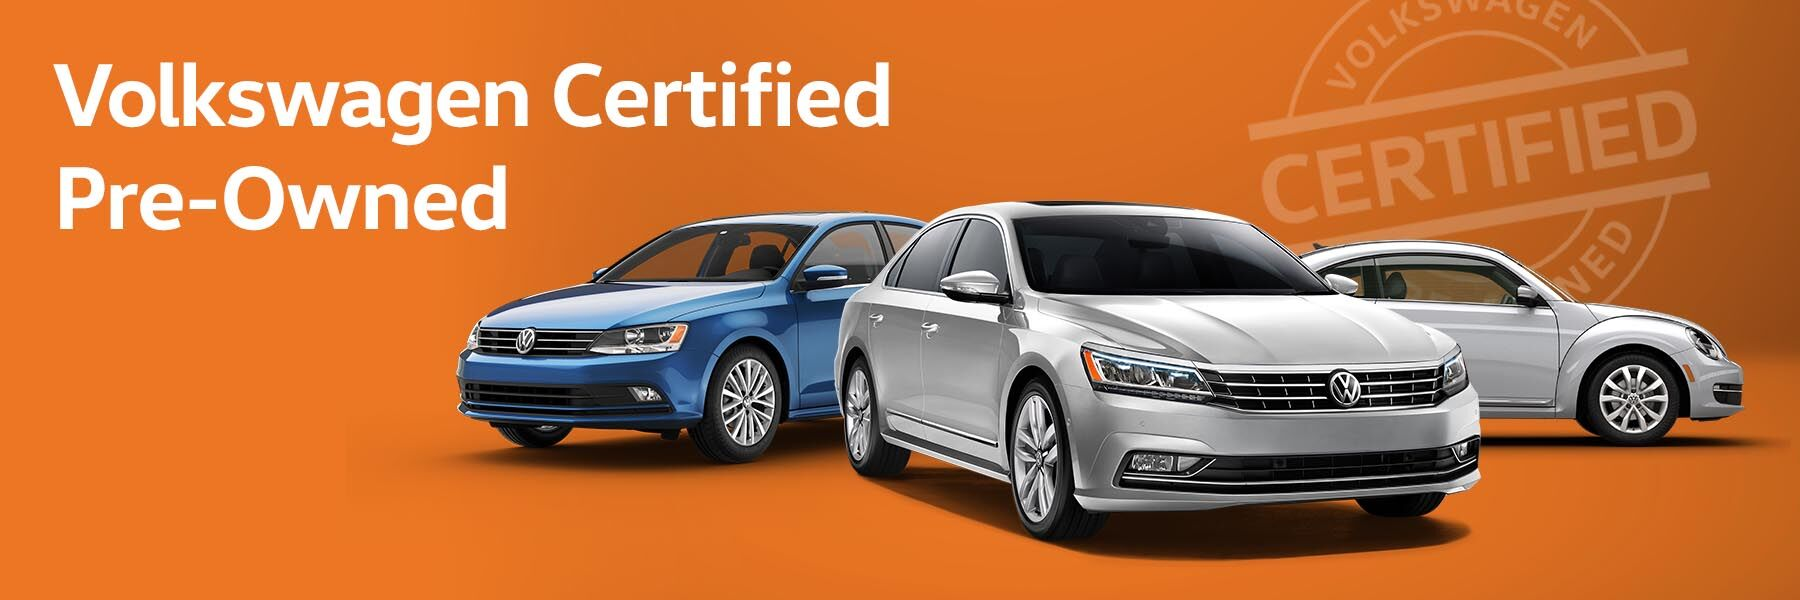 Volkswagen Certified Pre-Owned in West Islip, NY